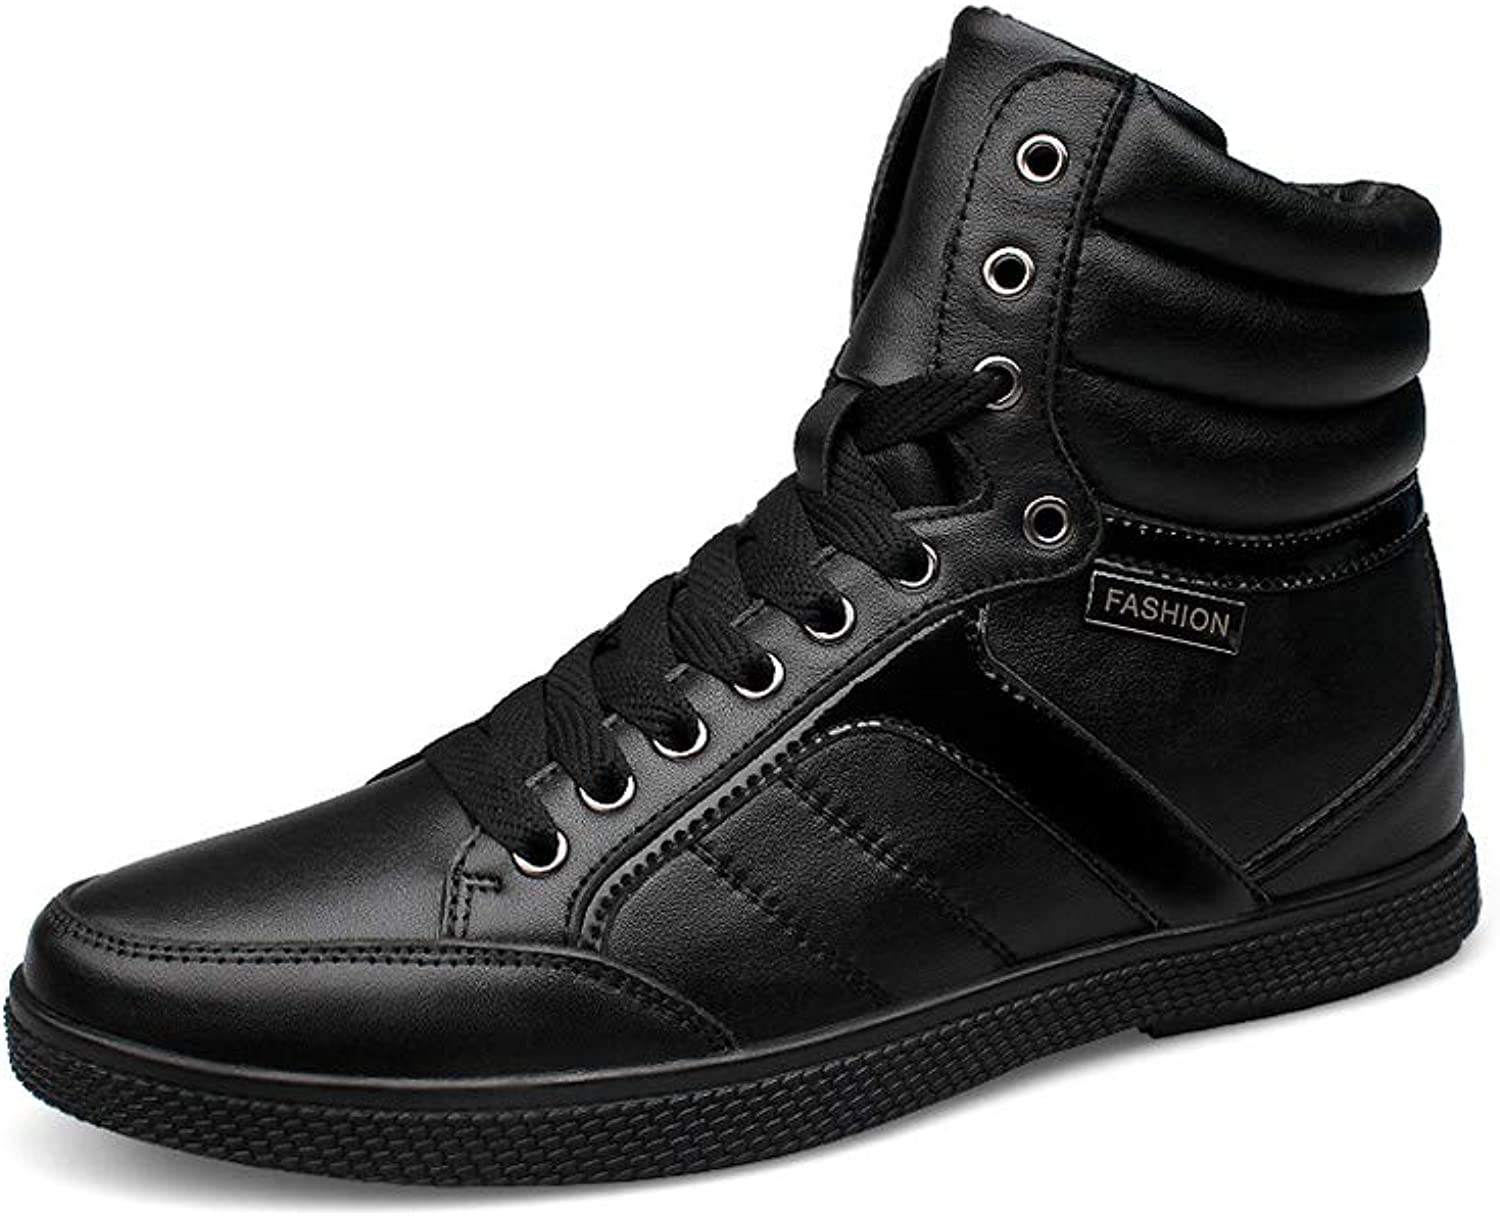 Men's British style Keep warm Breathable High boots Non-slip Wear resistant Leisure Cotton shoes